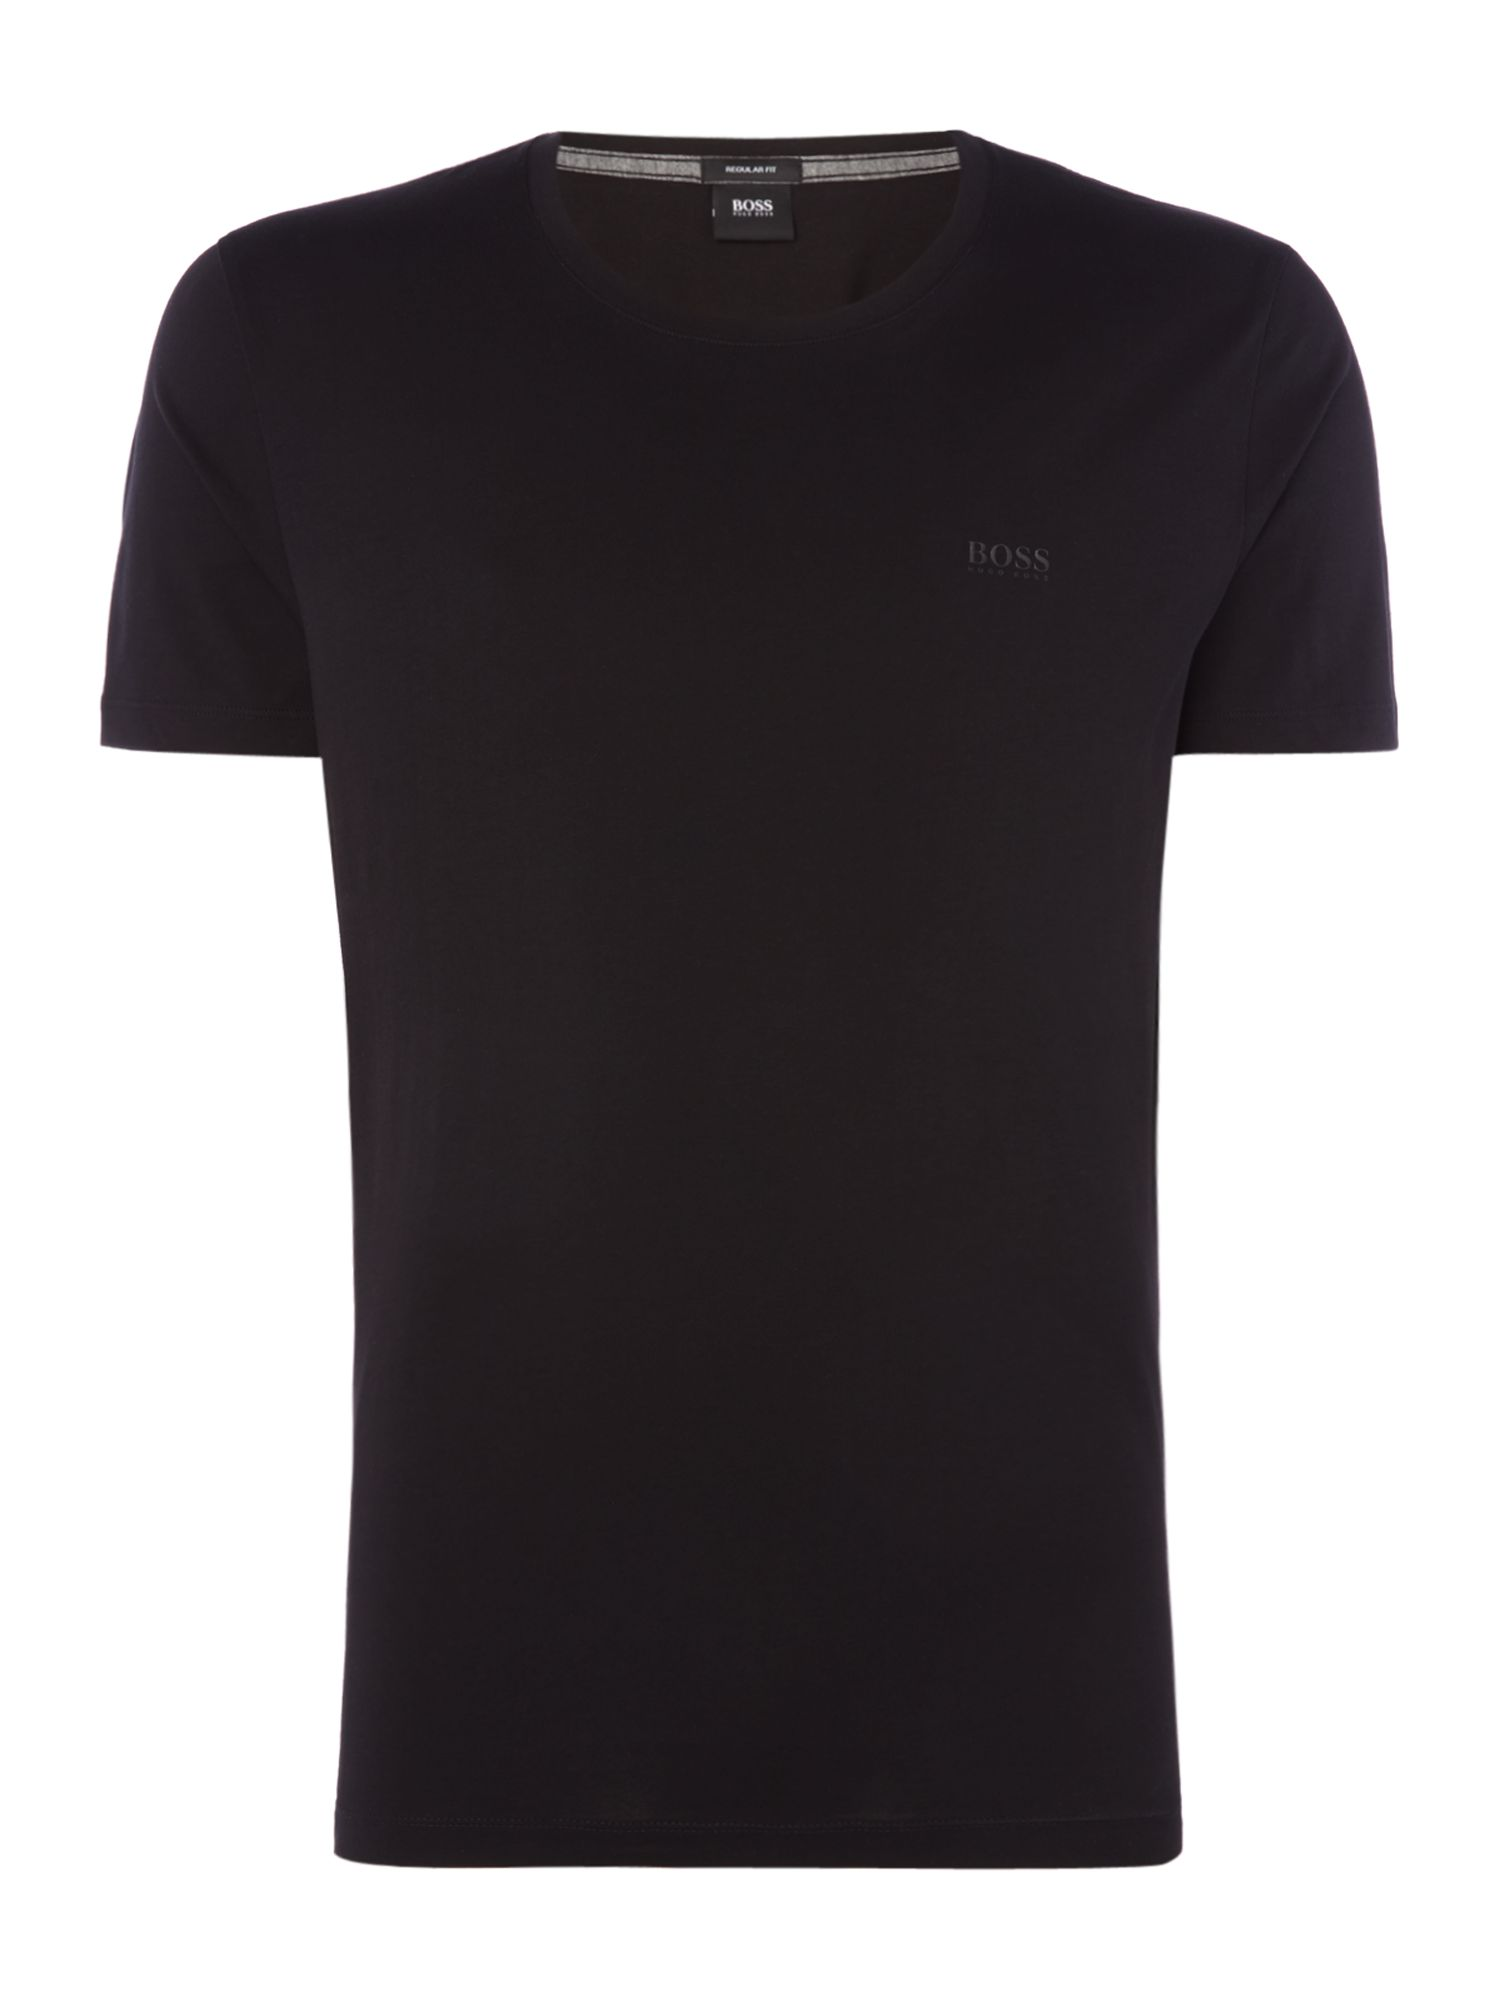 Men's Hugo Boss Tiburt liquid logo crew neck t-shirt, Black